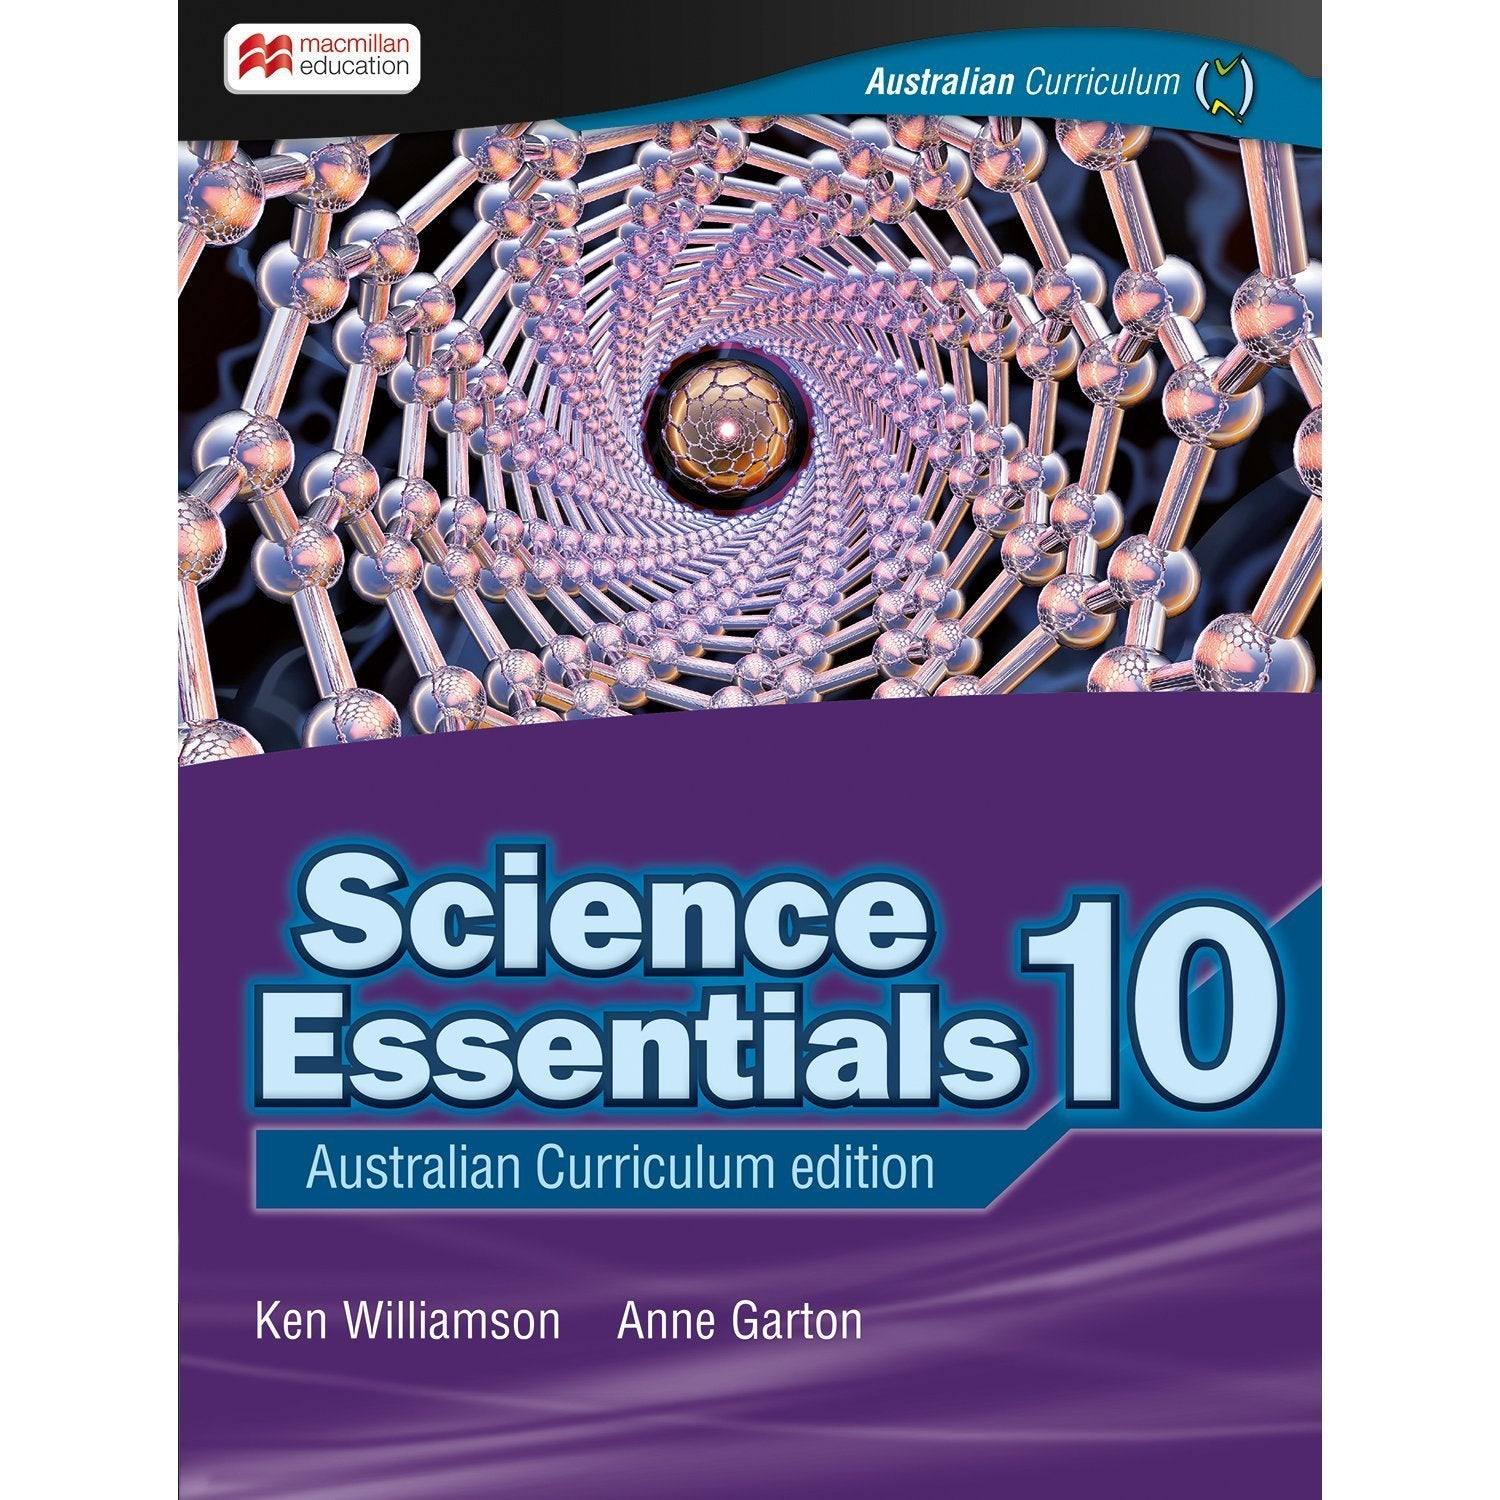 Science Essentials Australian Curriculum 10 Student Book + Digital